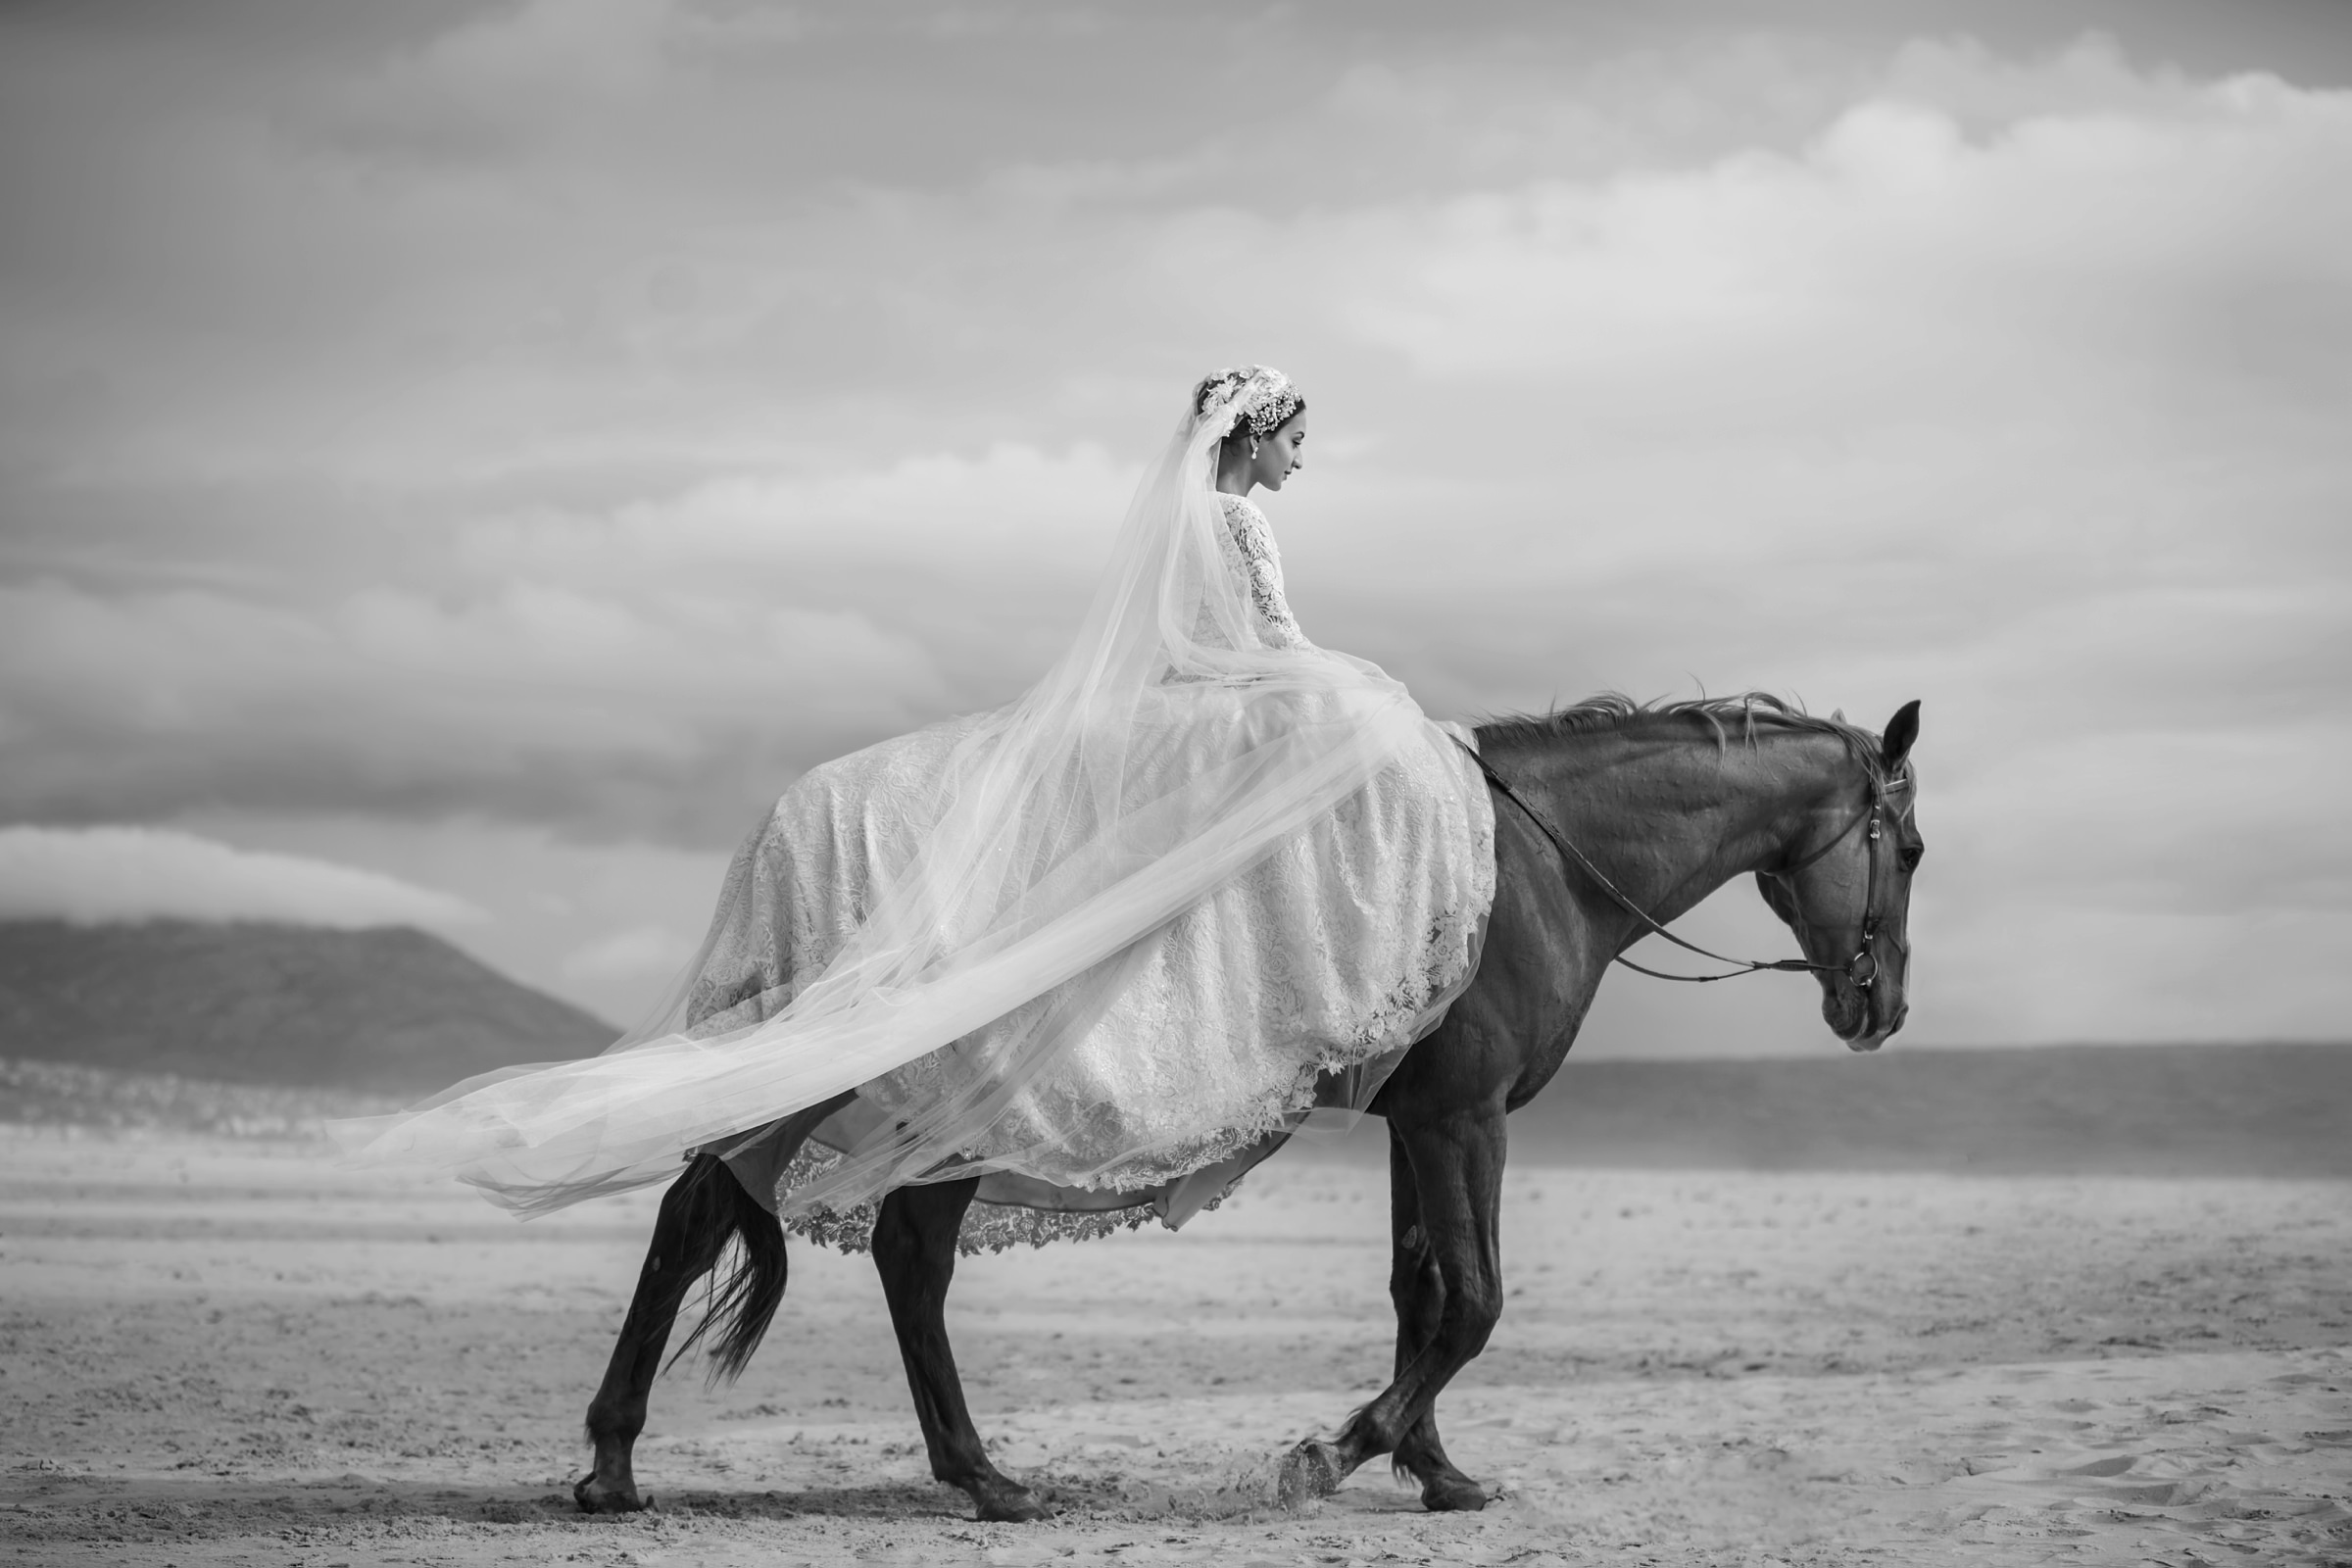 50 best wedding portraits of the decade - photo by Linda Vos